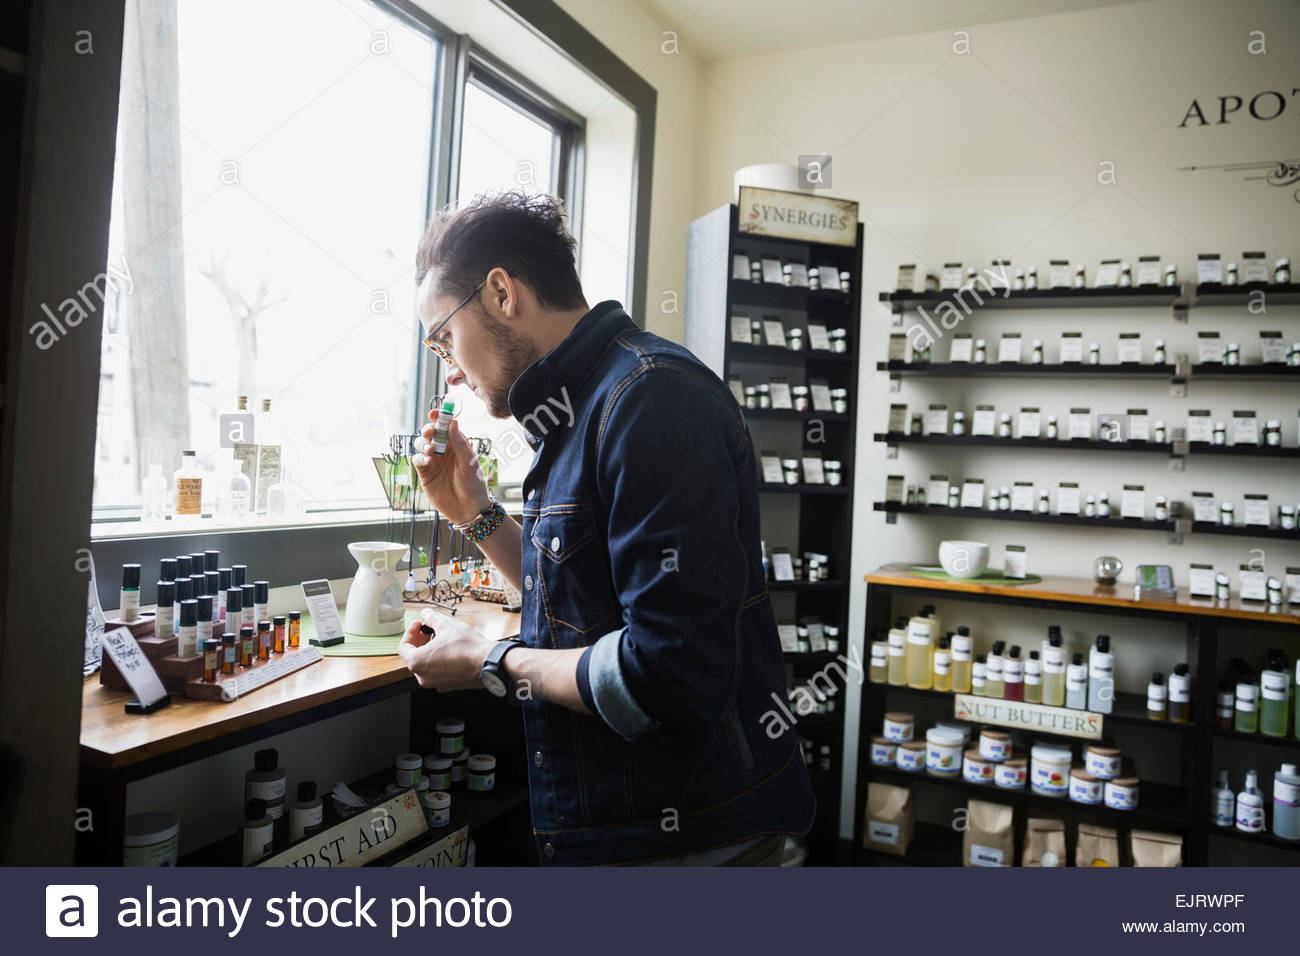 Man smelling essential oils in apothecary shop Stock Photo